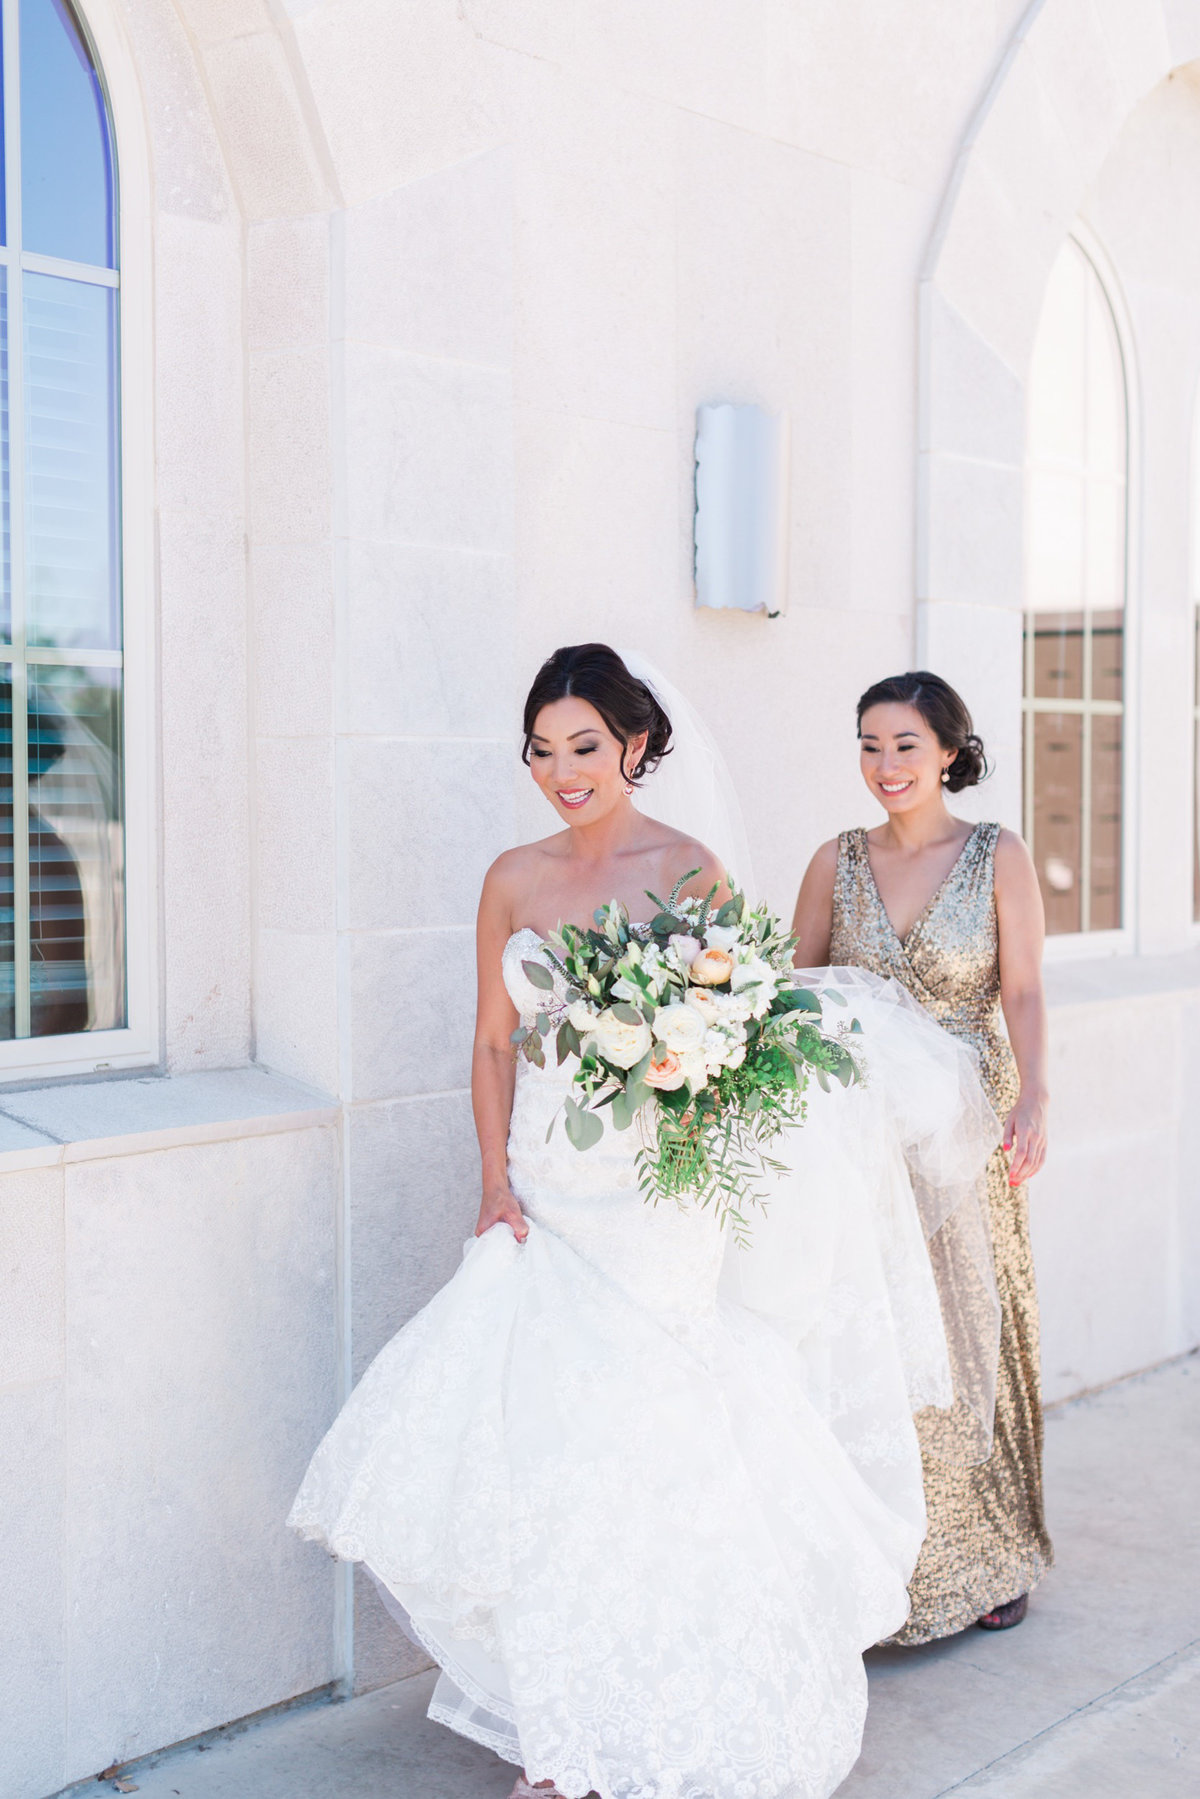 Stunning Wedding Photos_Valorie Darling Photography-9448